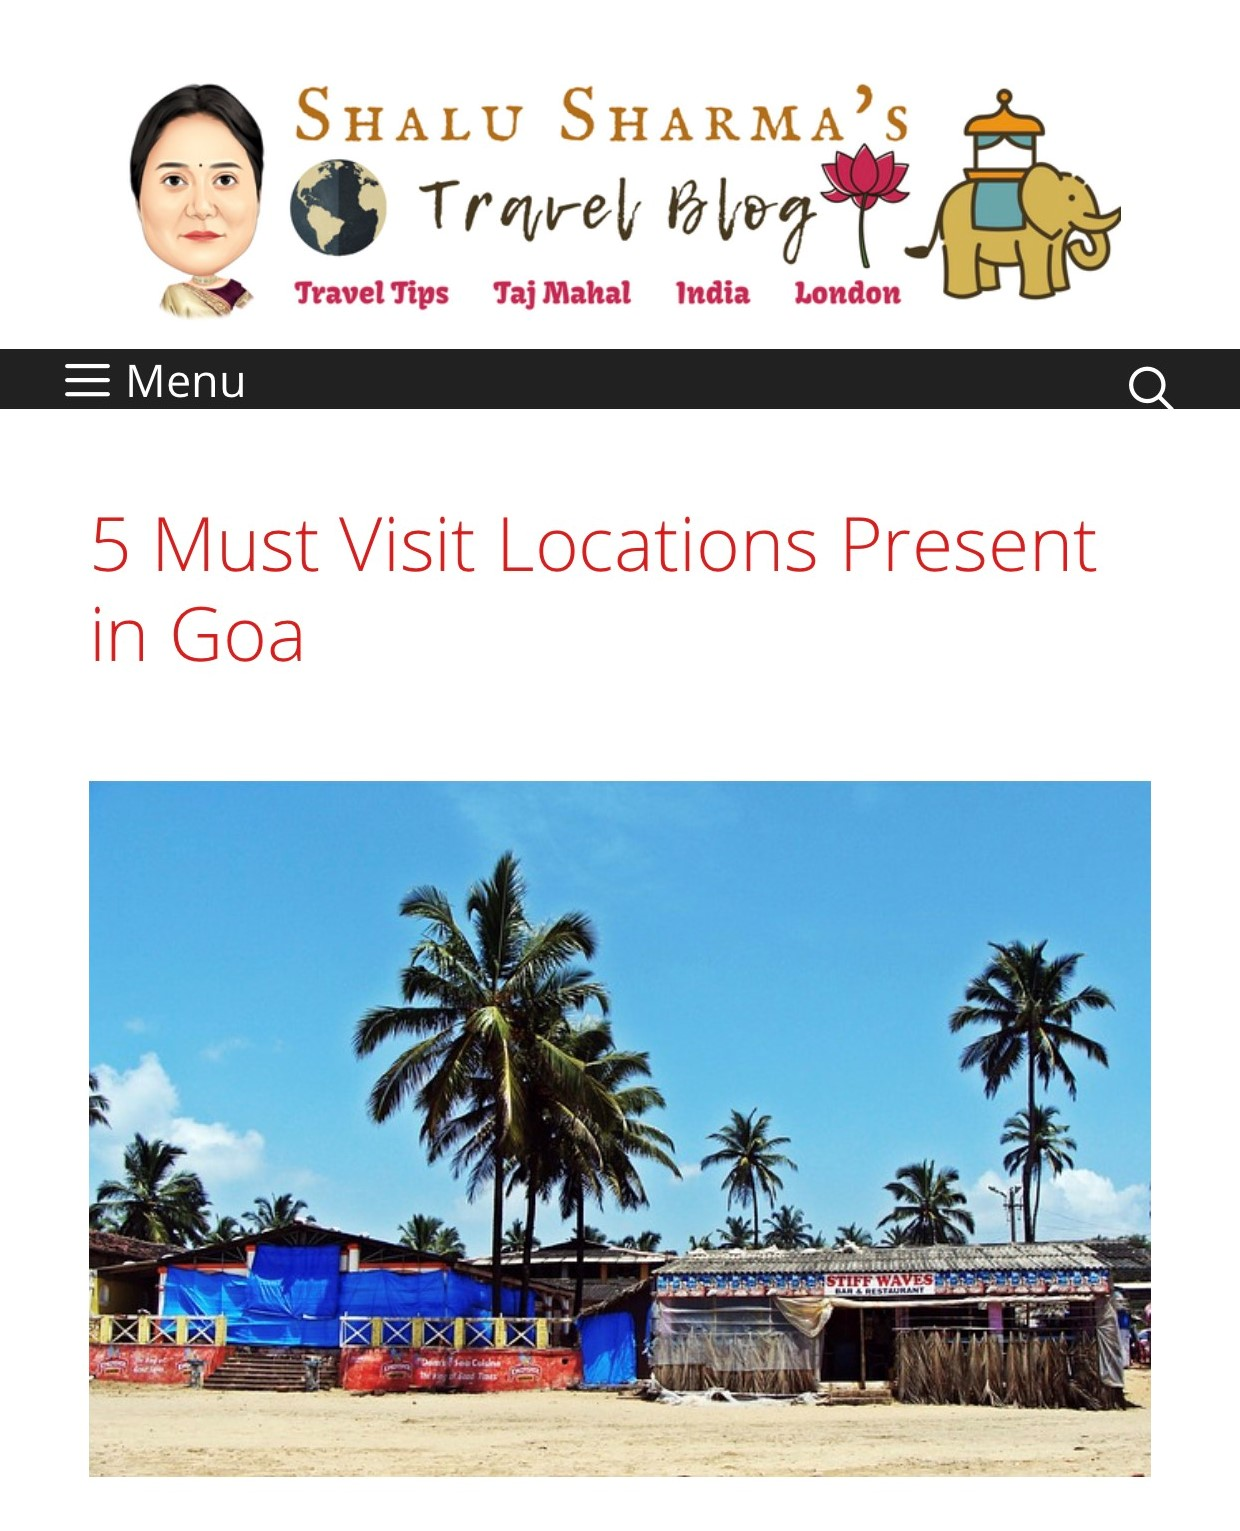 travel and work, digital marketing, housewives for digital marketing, work from home, small business, blogging at home, digital marketing from home, homemakers